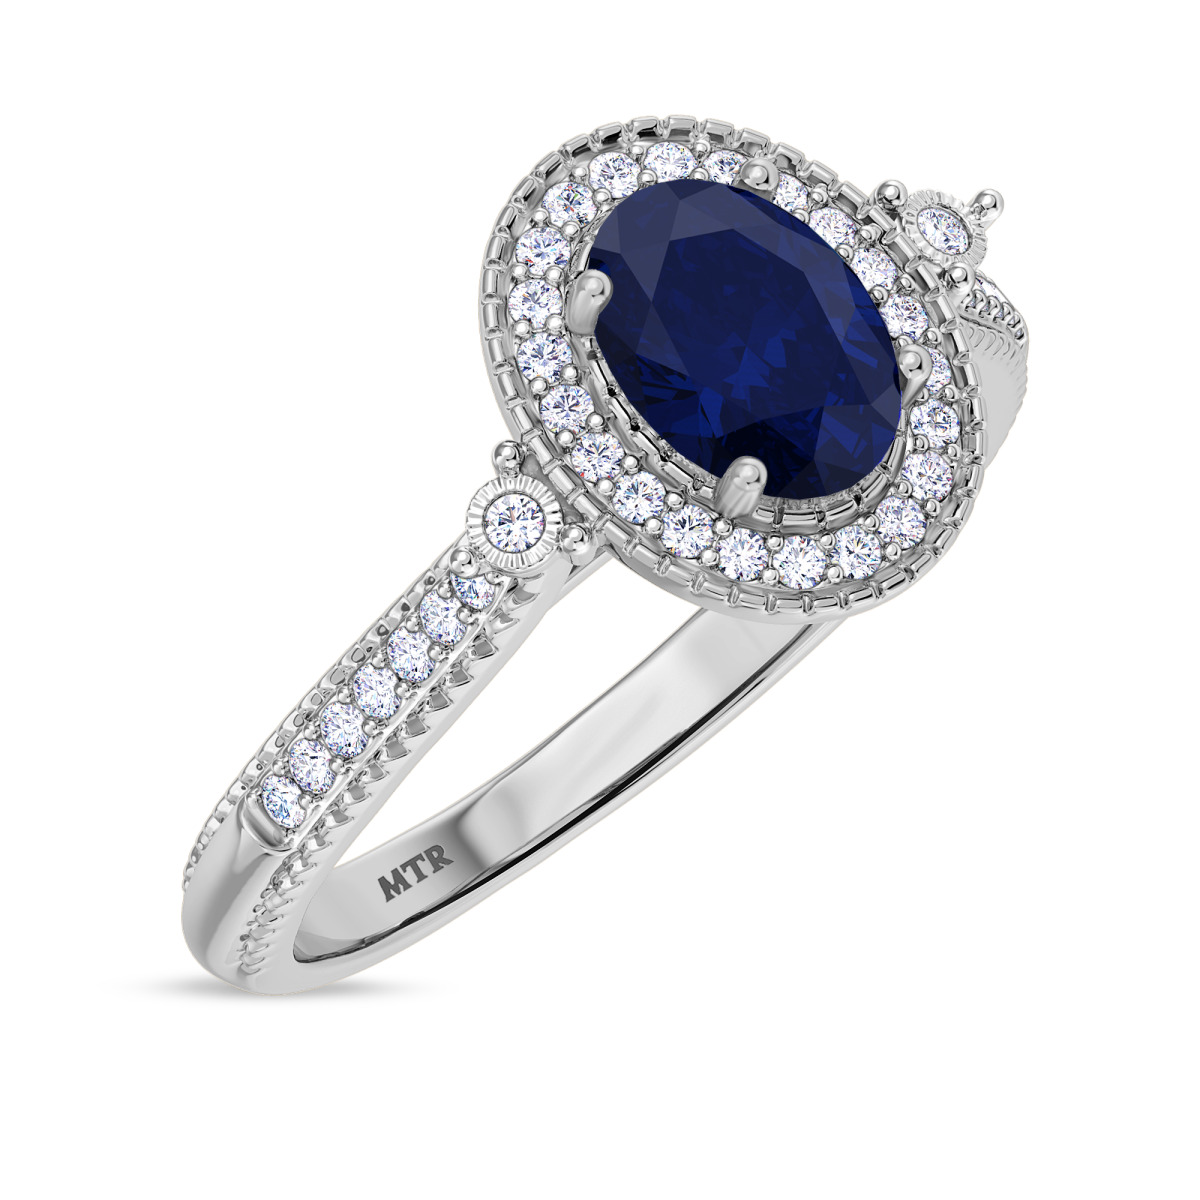 1 1/6 CT. T.W. Sapphire Engagement Ring 10K White Gold